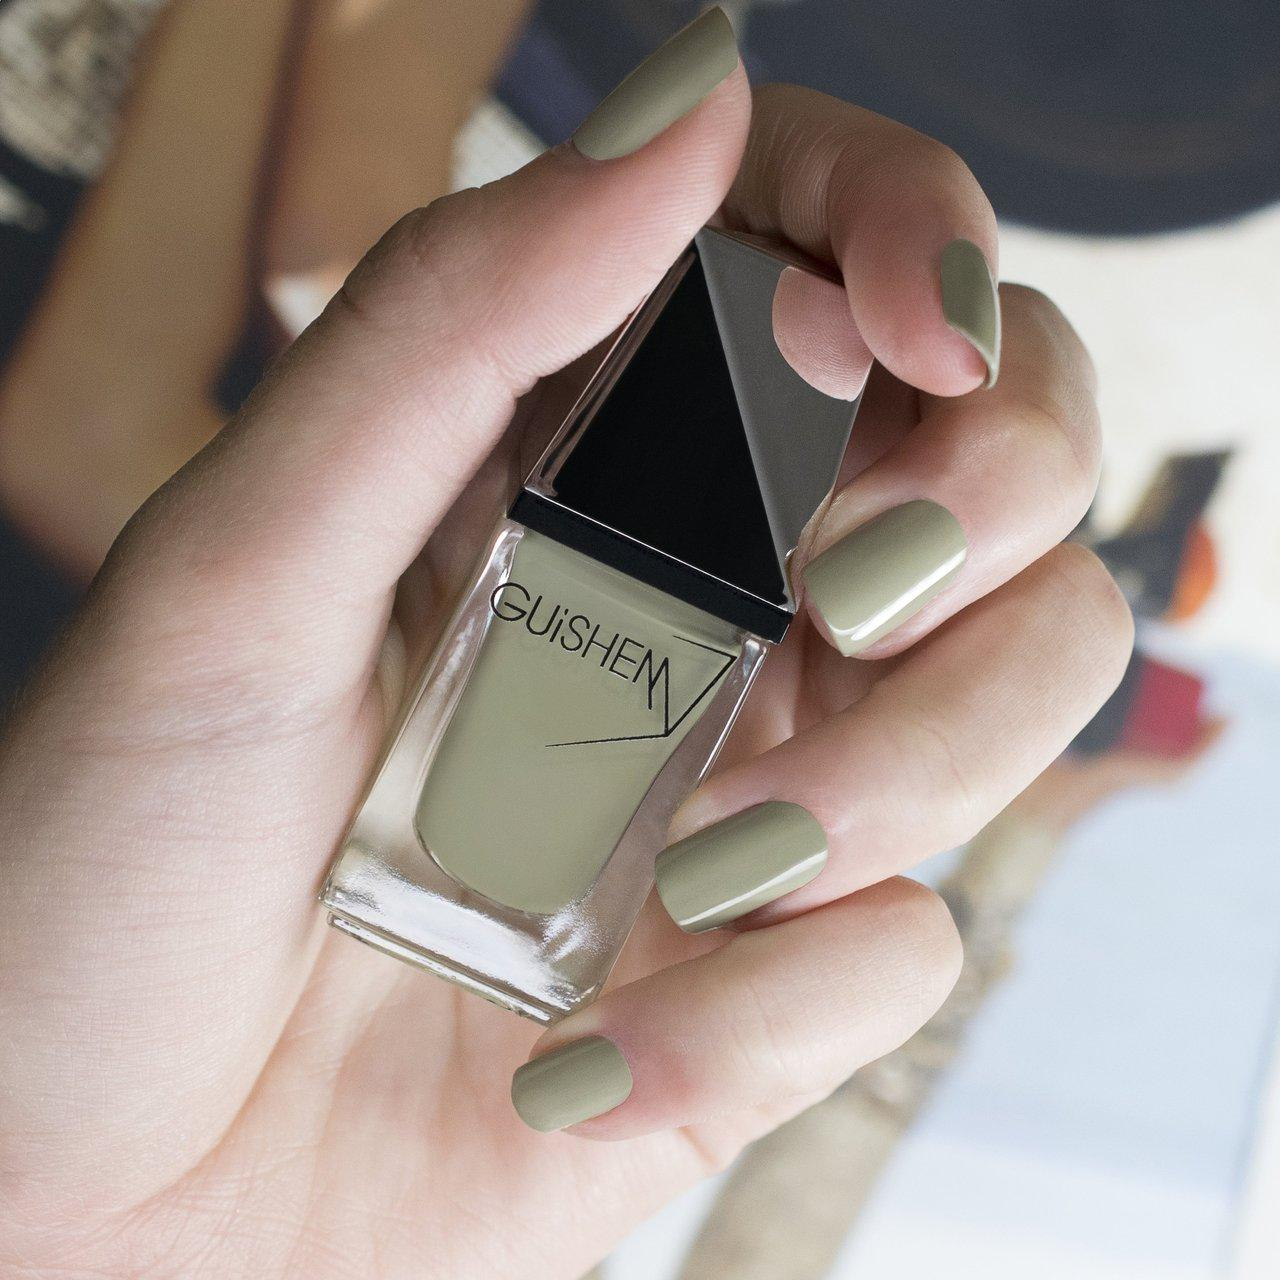 GUiSHEM Premium Nail Lacquer Crème Mint Green, Dusty Green - 180